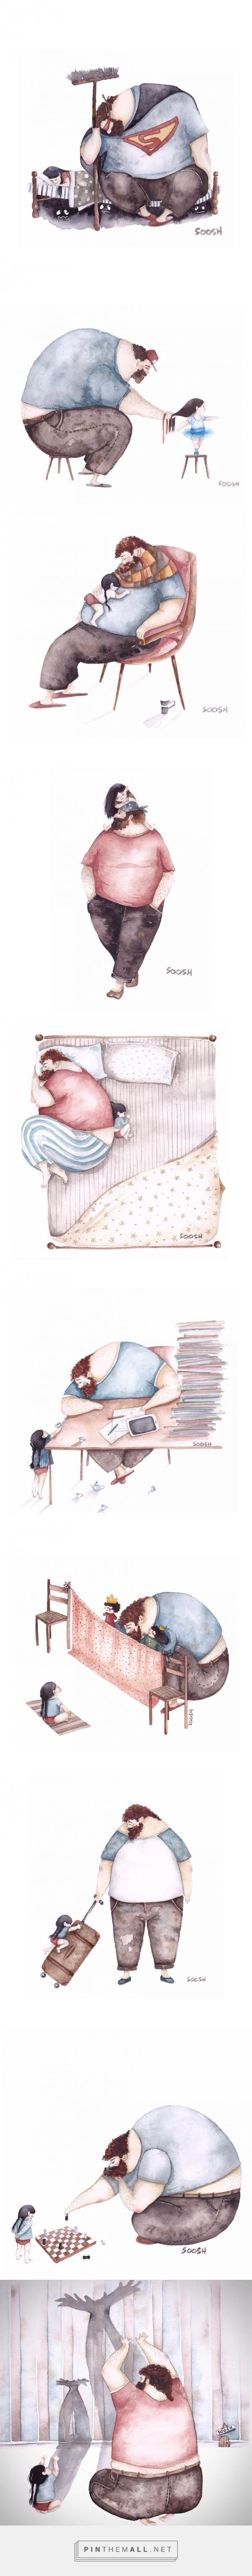 Heartwarming Illustrations About The Love Between Dads And Their Little Girls - Snezhana Soosh, a young painter, has drew beautiful watercolor paintings on her Instagram: https://www.instagram.com/vskafandre/